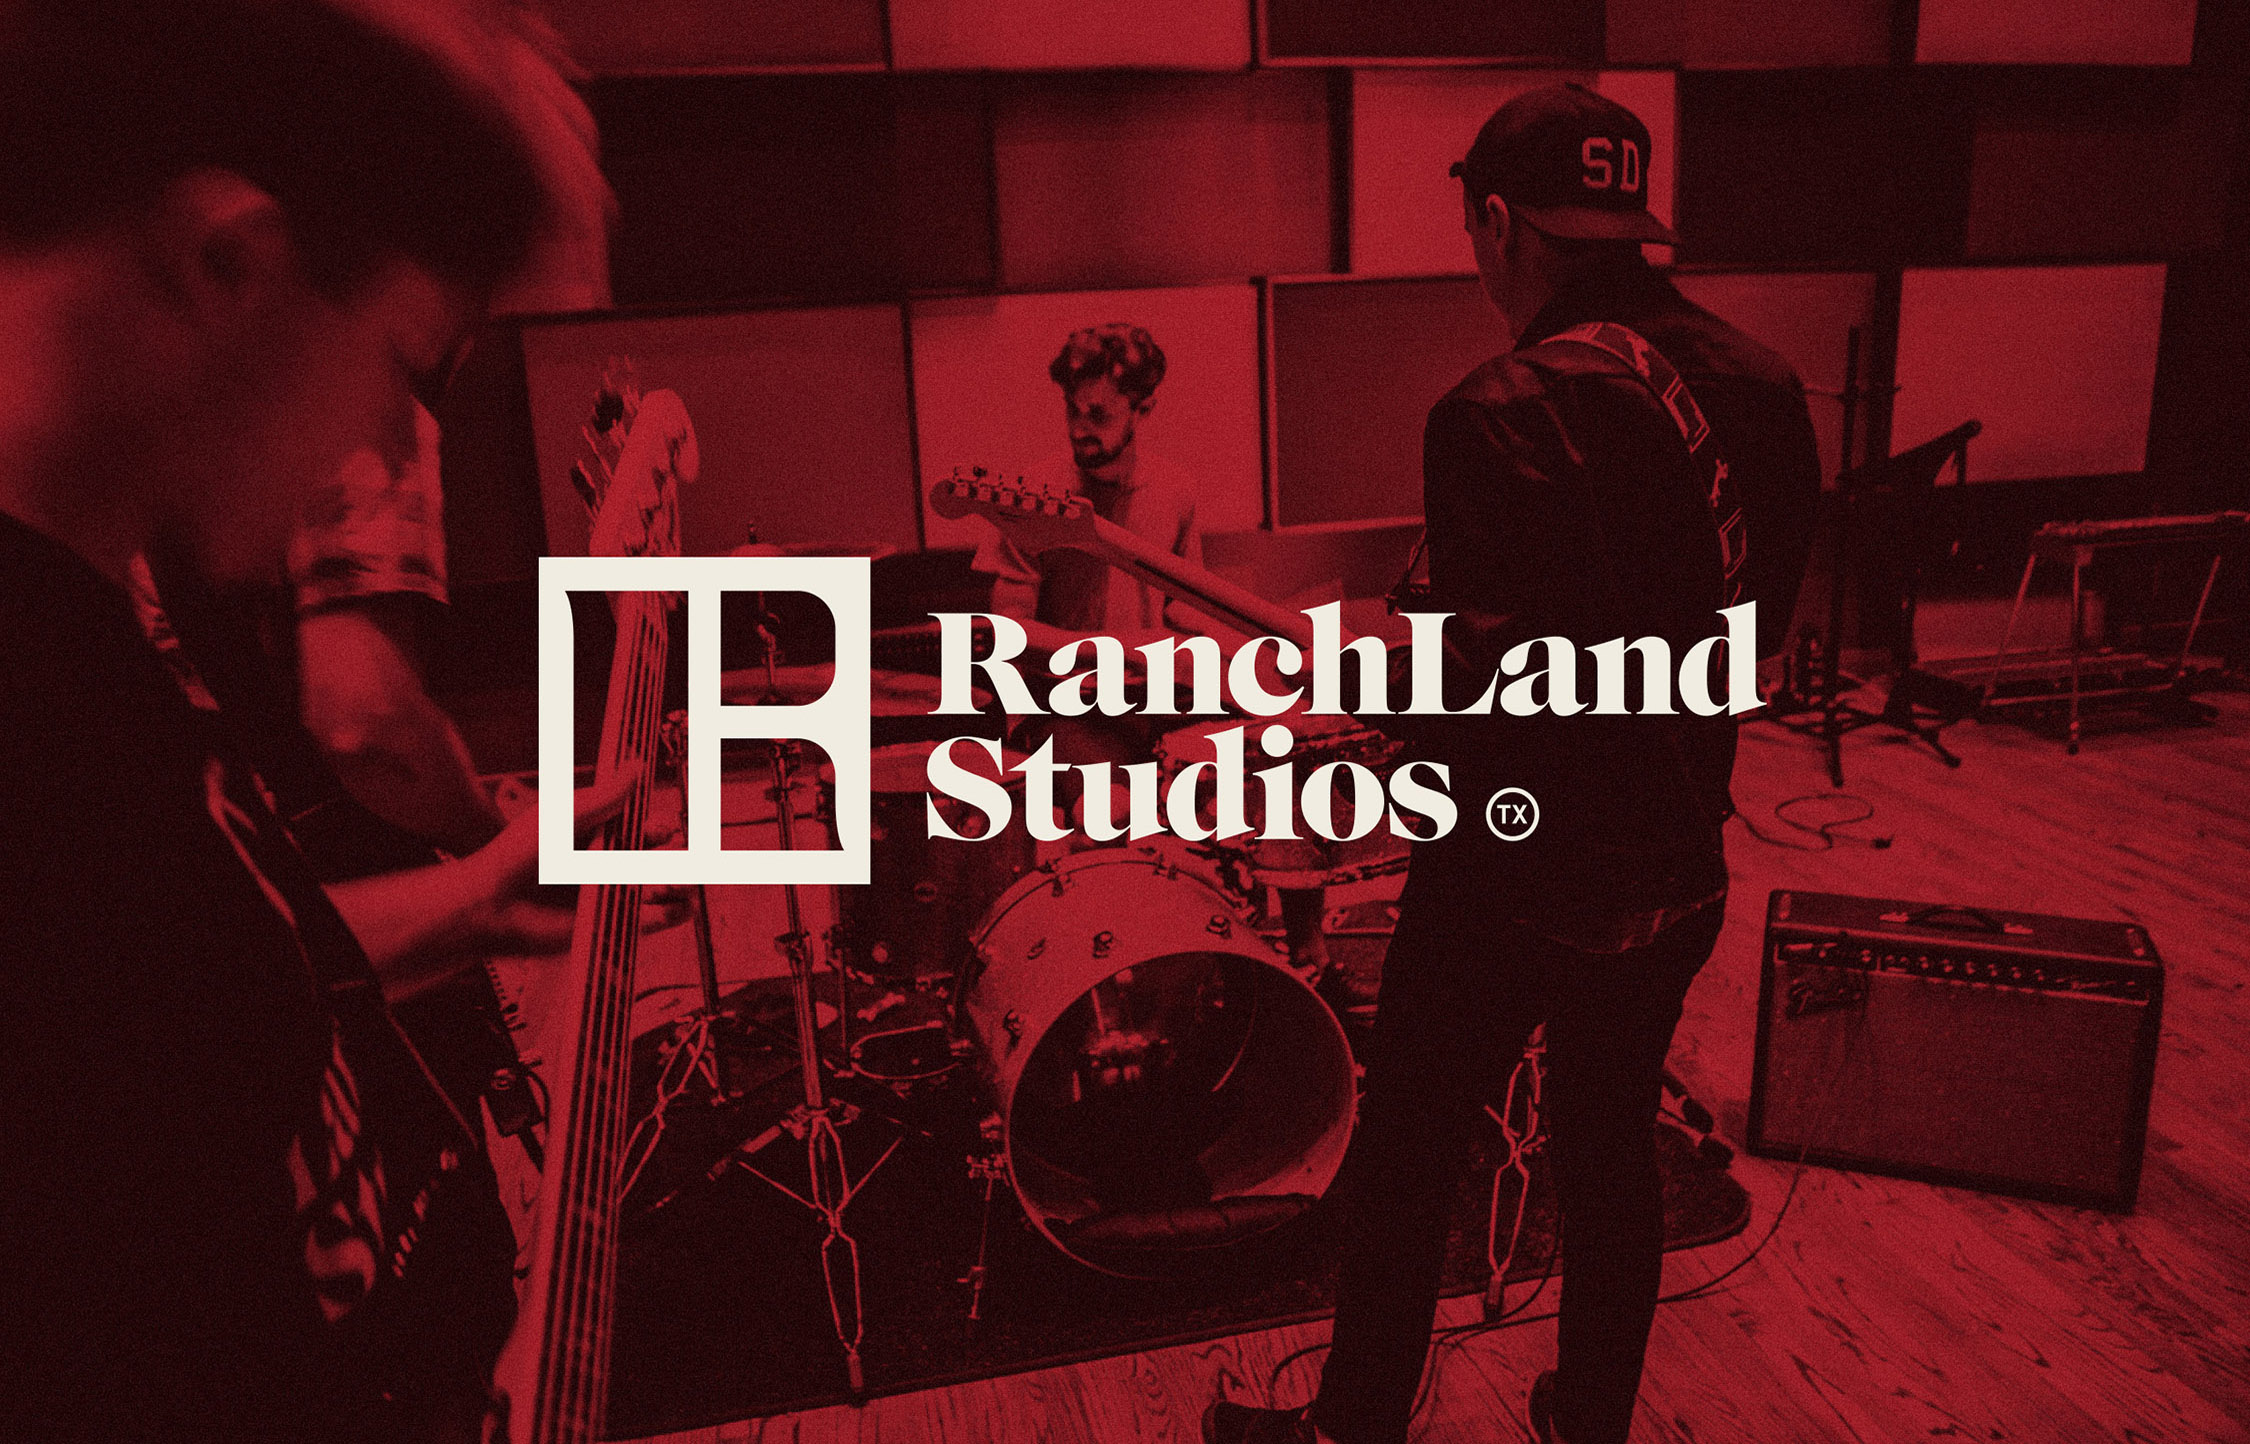 Ranch Land Studios